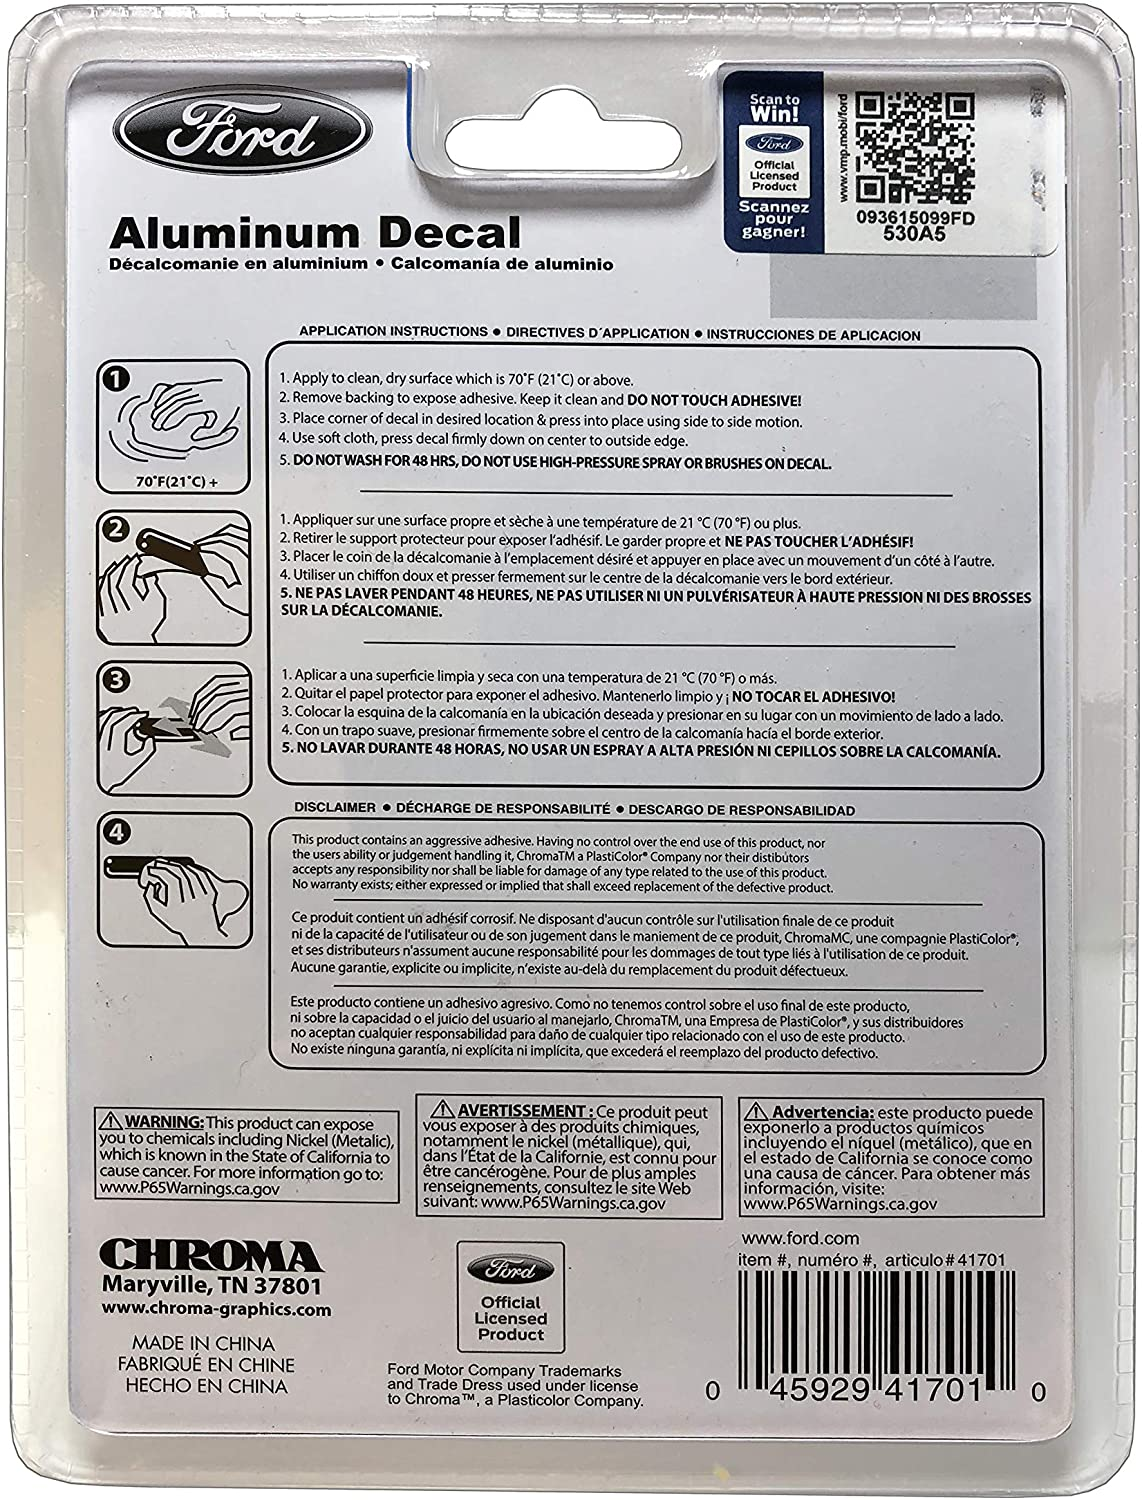 CHROMA 041701 Aluminum Decal